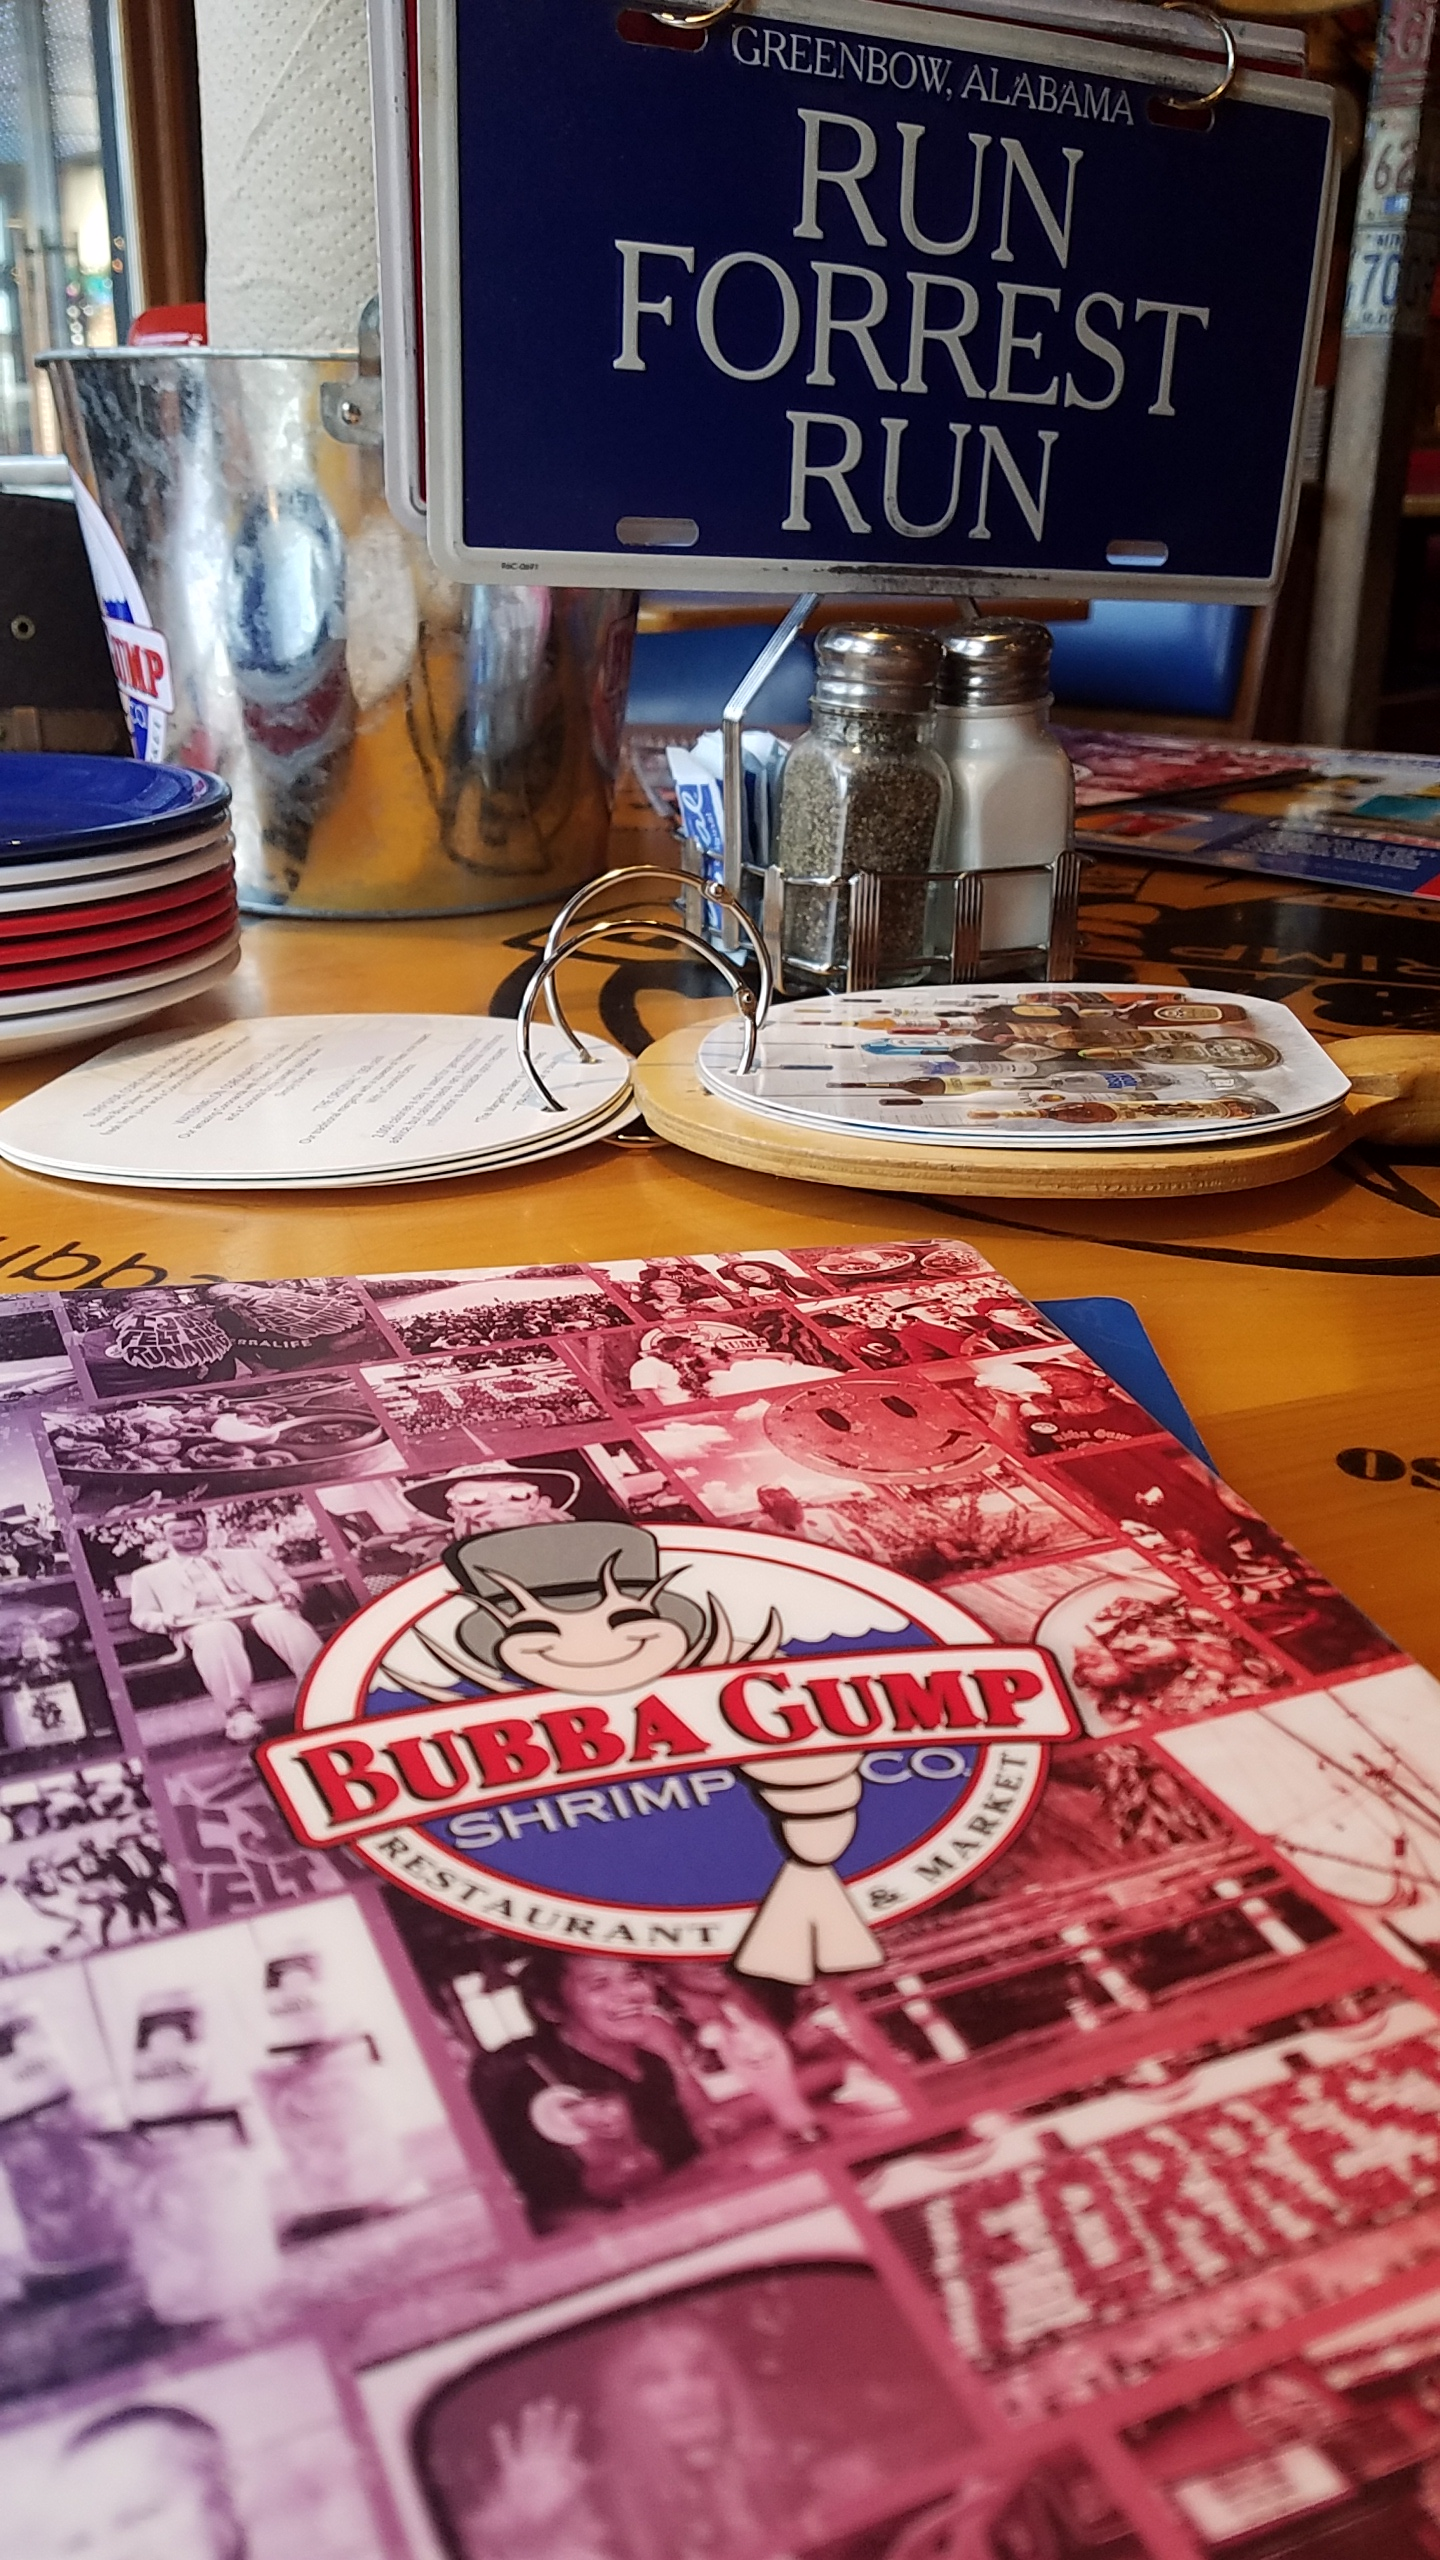 Bubba Gump Shrimp Co Lunch at Chicago's Navy Pier